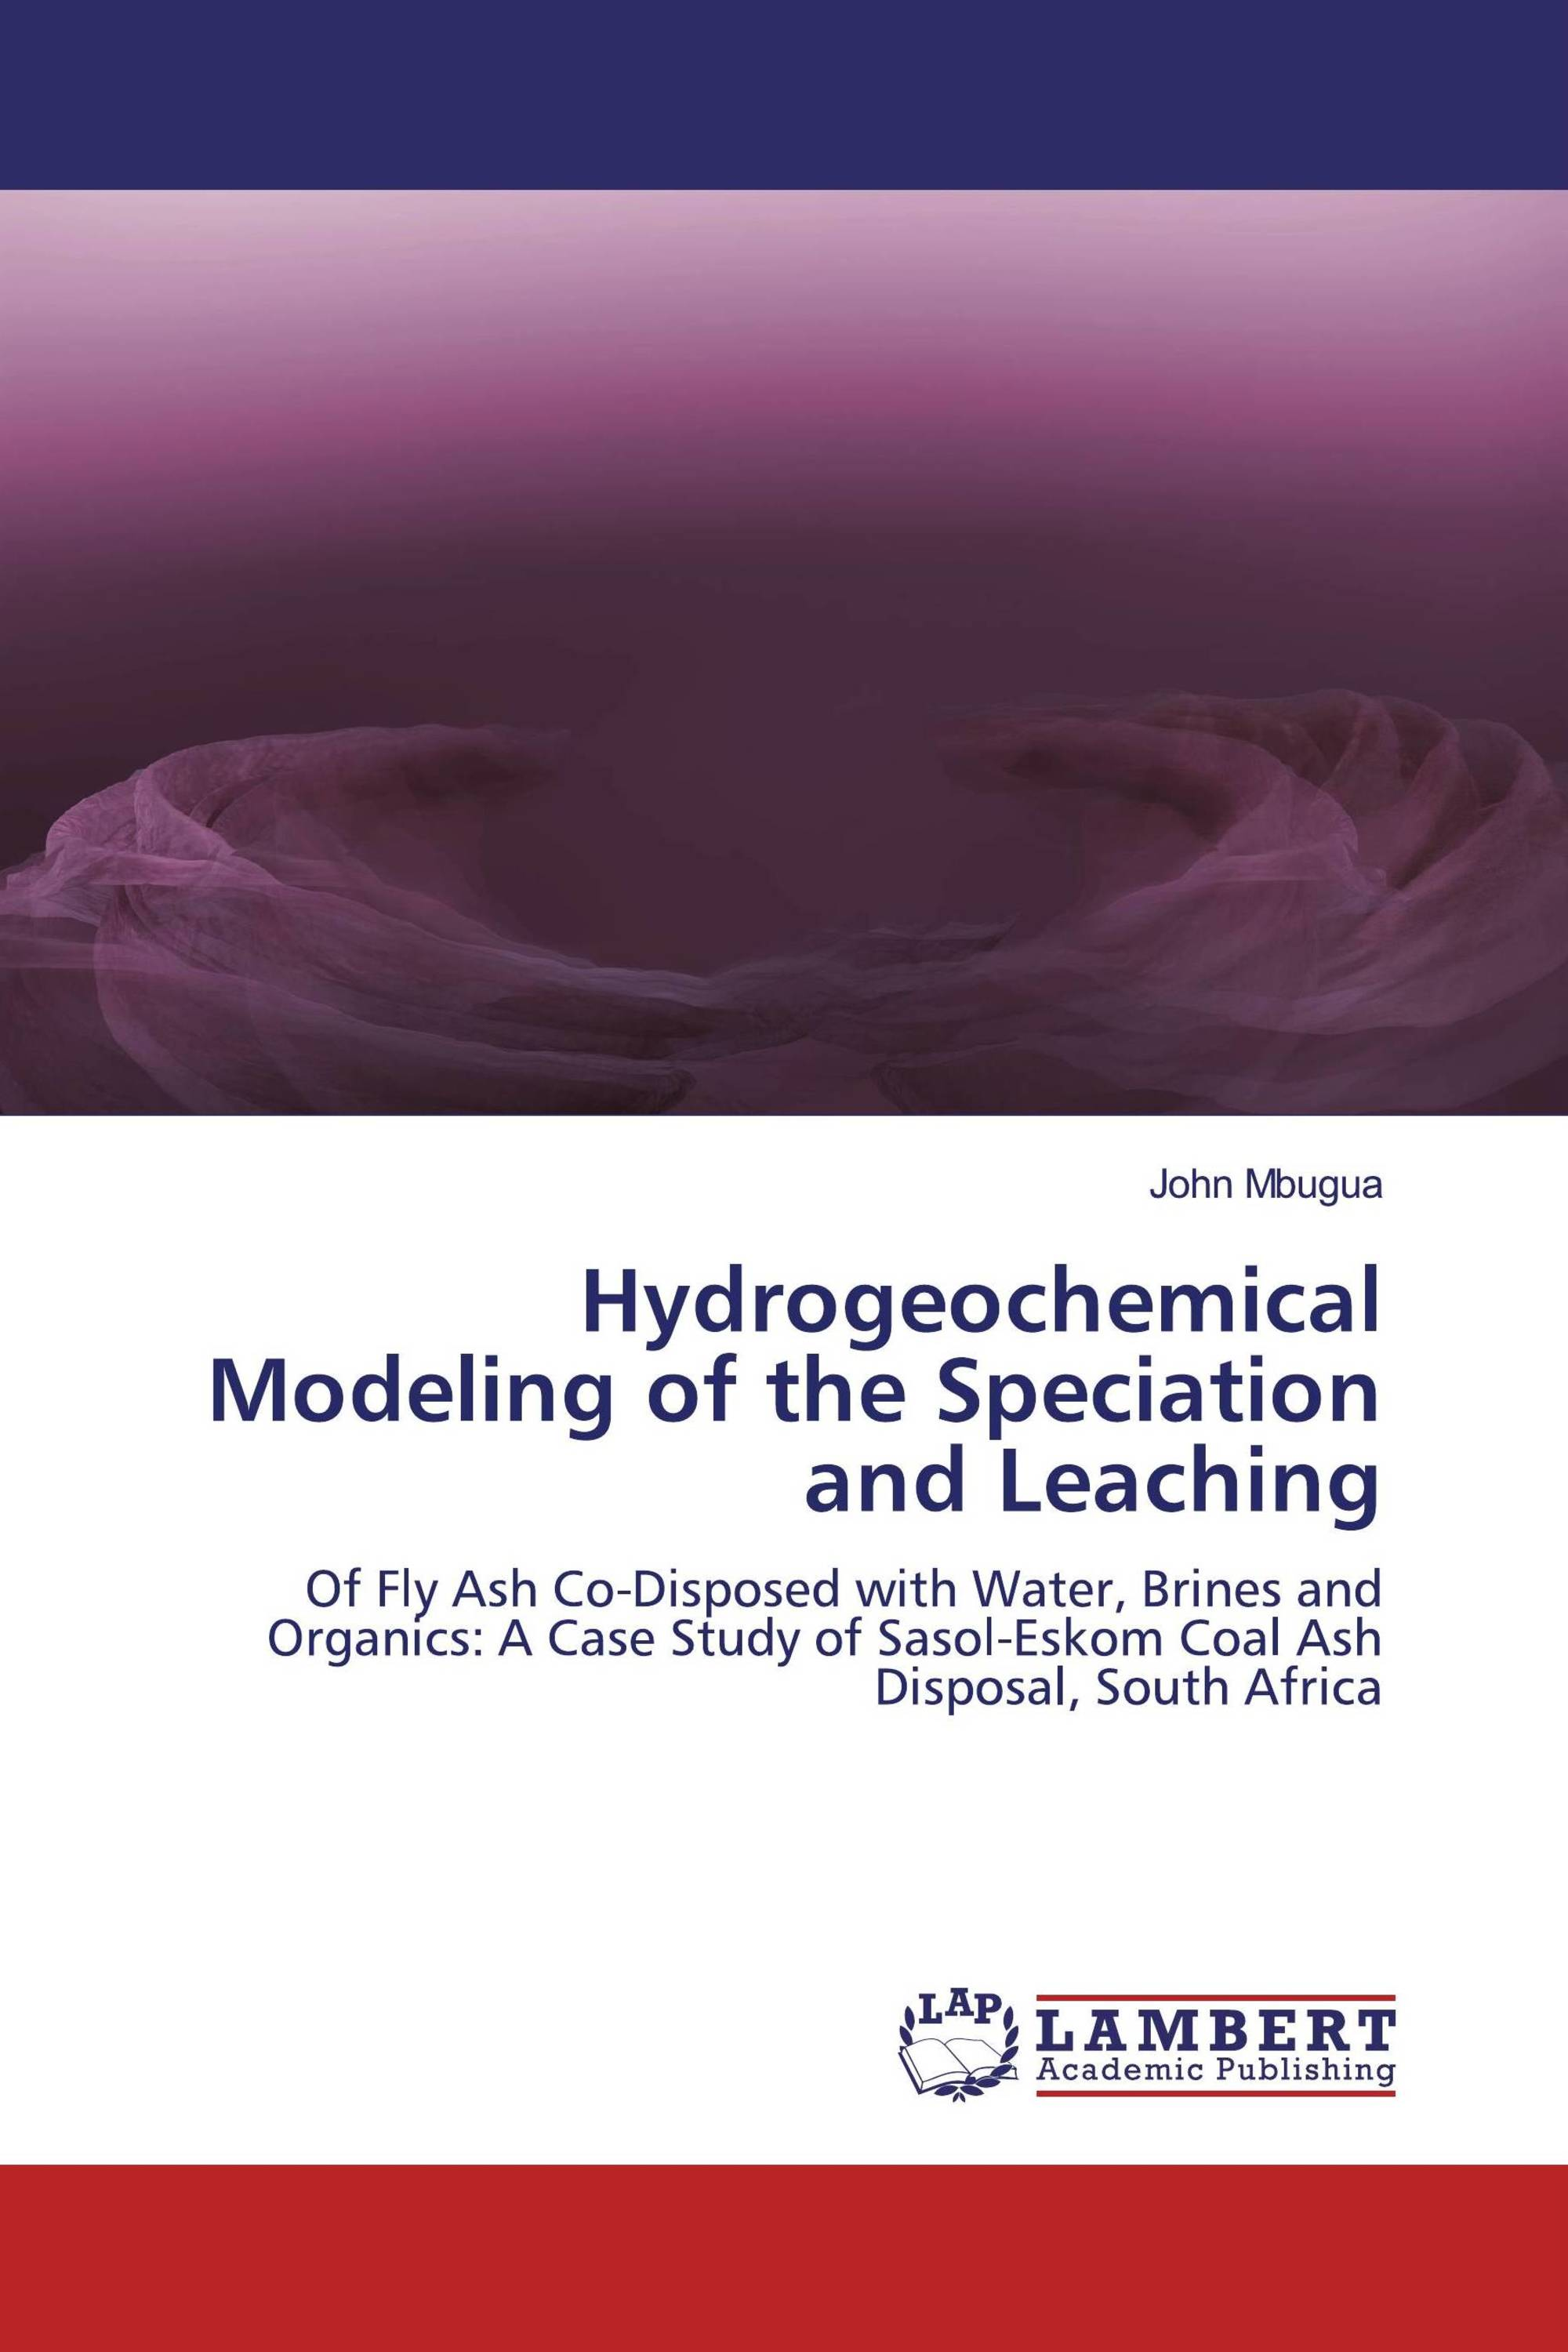 Hydrogeochemical Modeling of the Speciation and Leaching